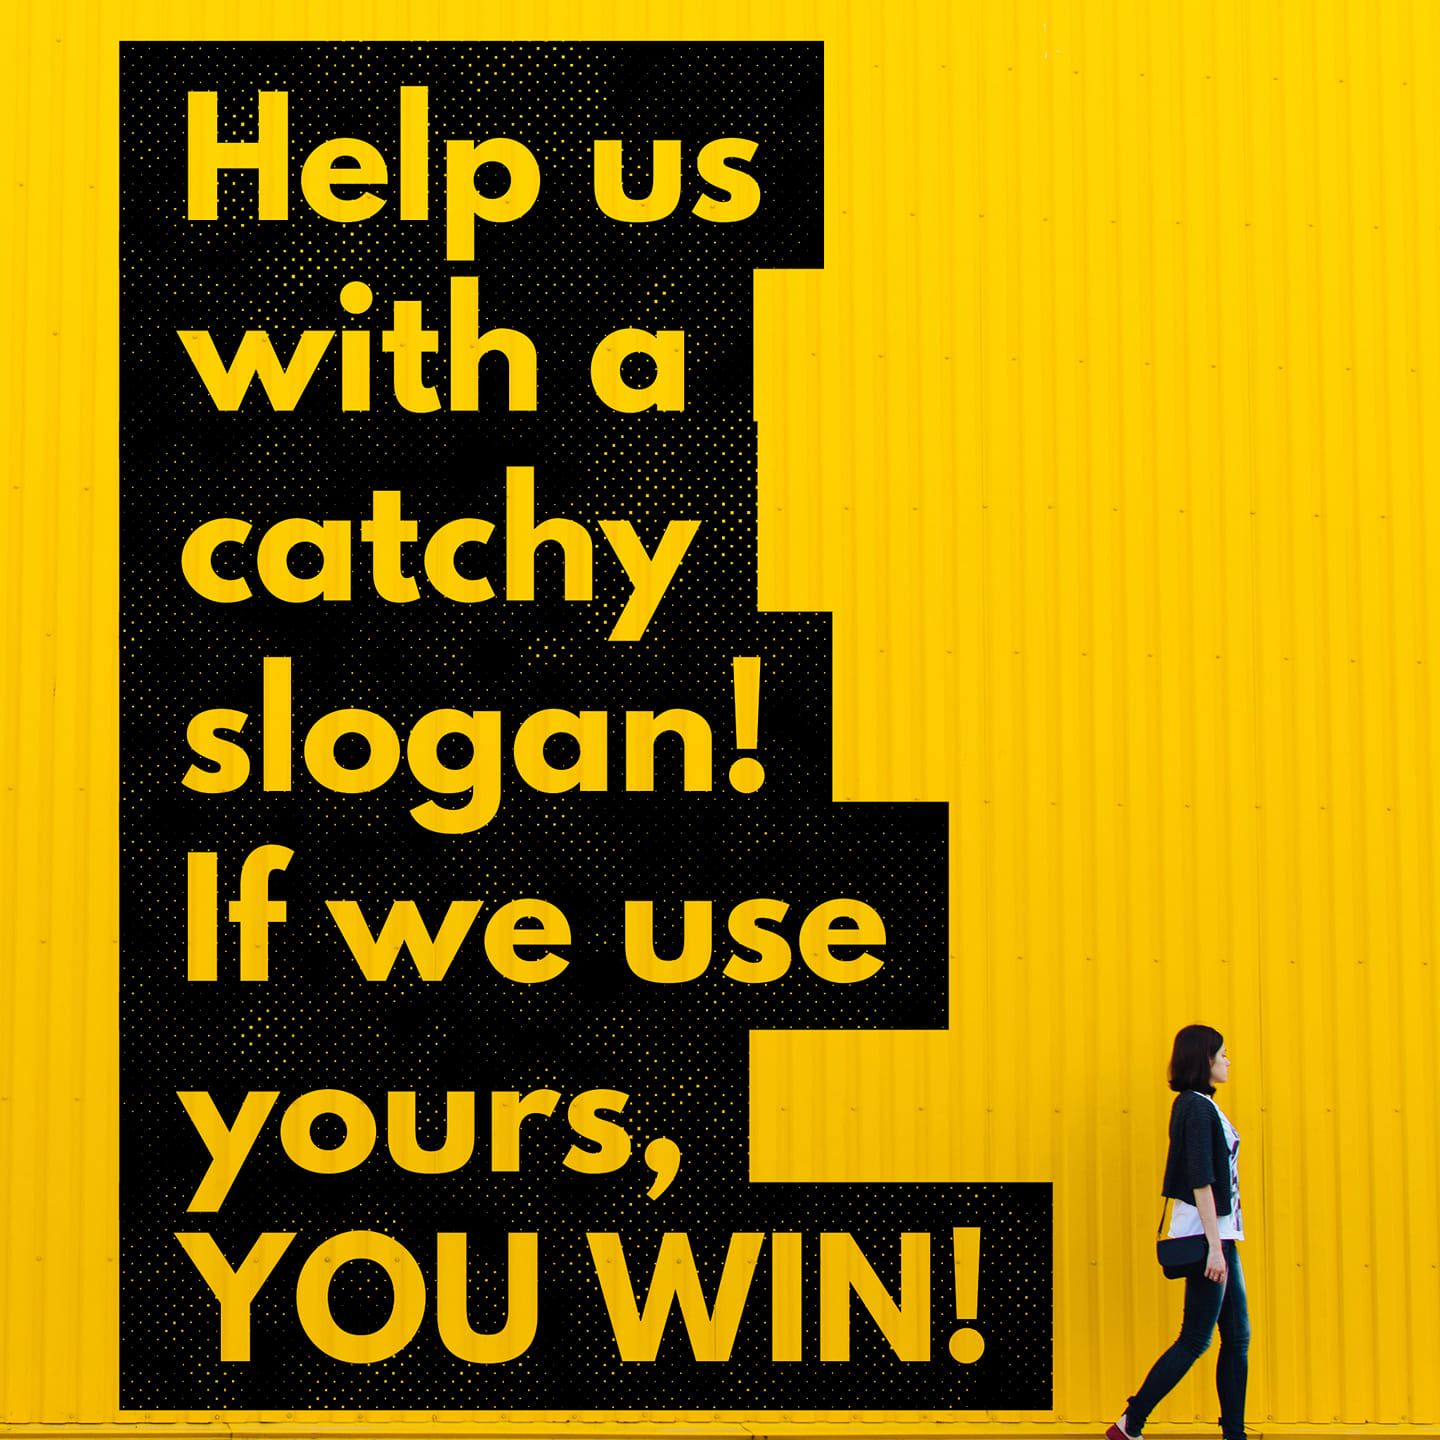 Help us with a catchy new slogan!